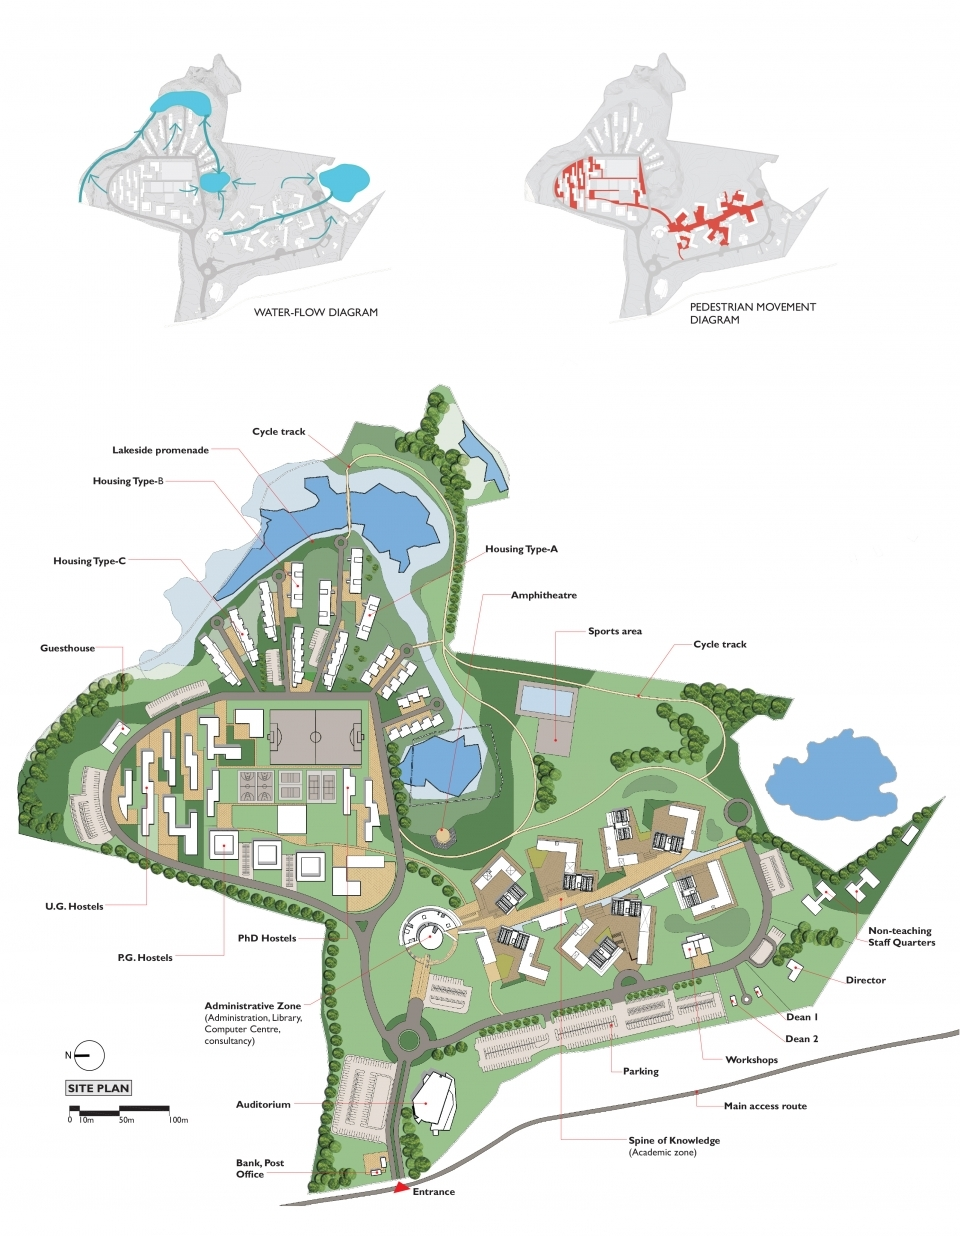 Site Plan (bottom) and water-flow (top right) and pedestrian movement (top left)